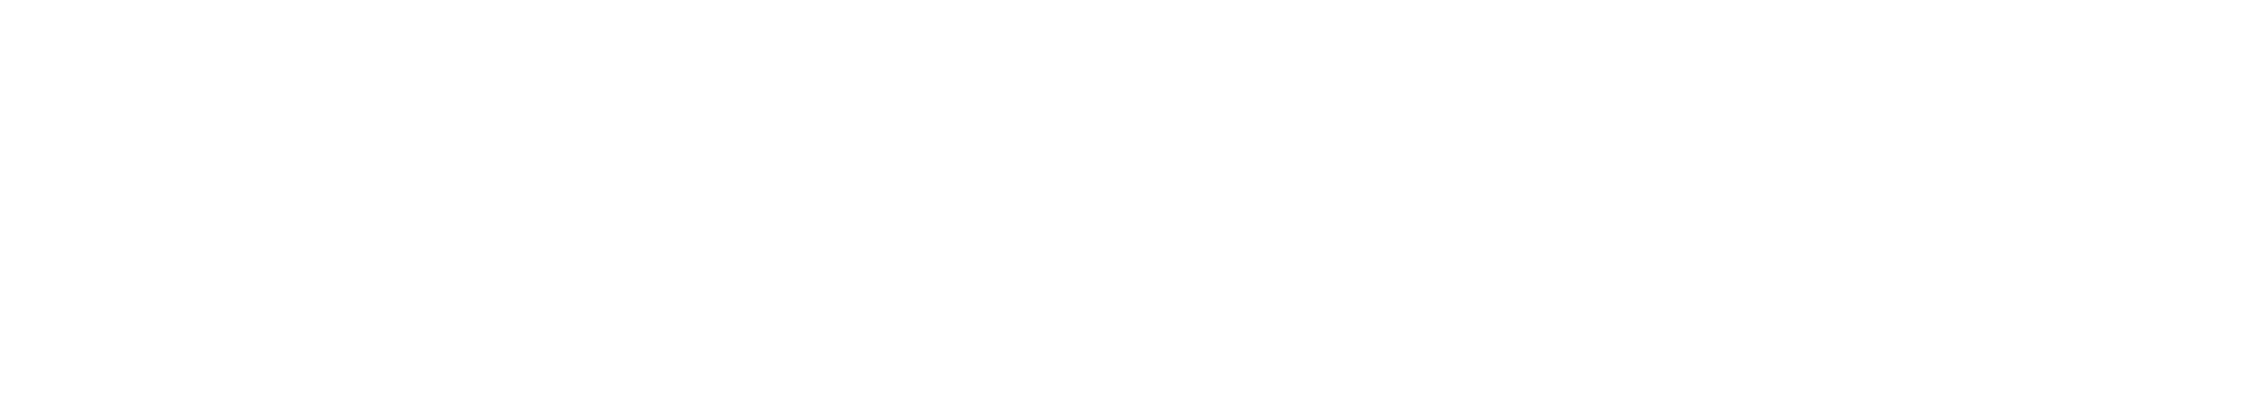 The Brand Surgery - Brand Development, Marketing Strategy and Creative